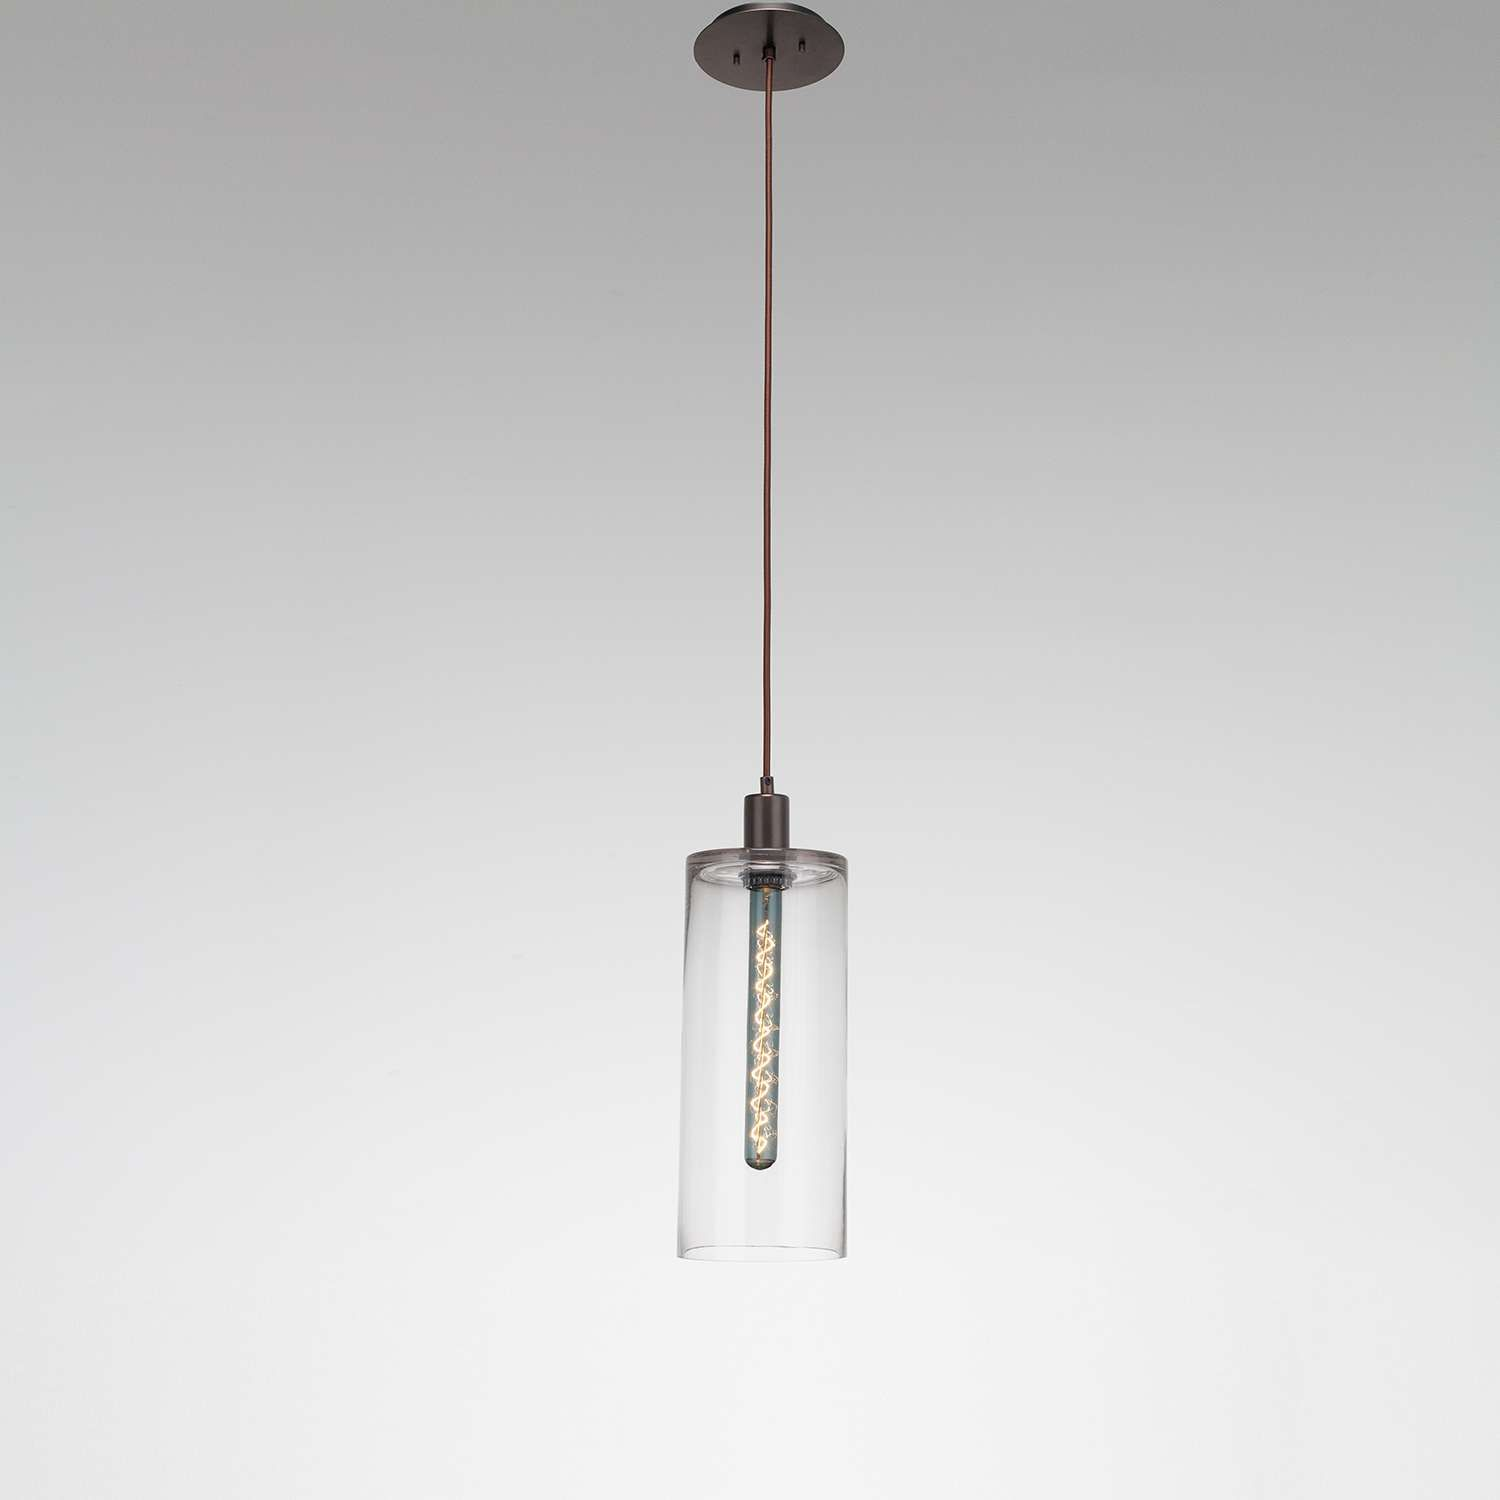 Apothecary 8-Inch Mini Pendant Light & Apothecary 8-Inch Mini Pendant Light | Apothecaries Mini pendant ...